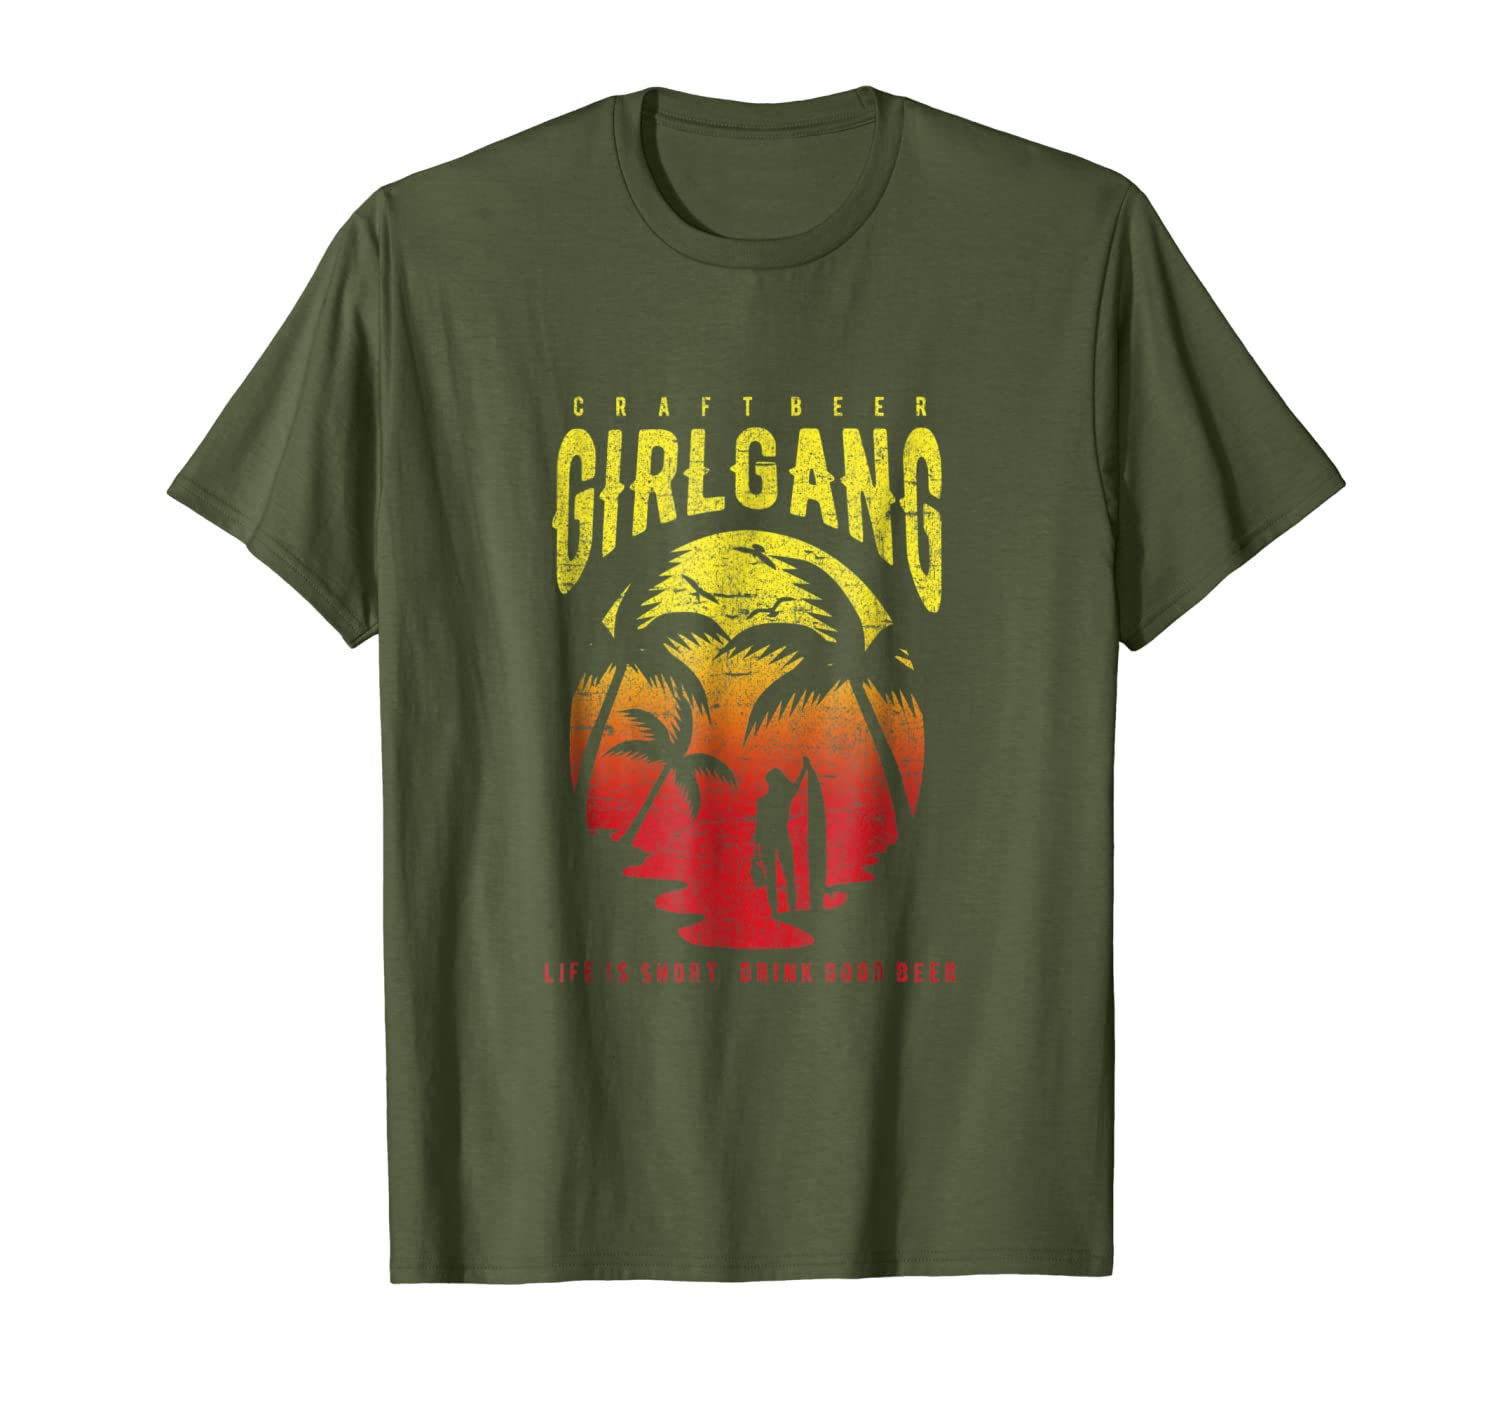 Amazon.com: Craft Beer Girl Gang Surfing Tropical Sunrise T ...